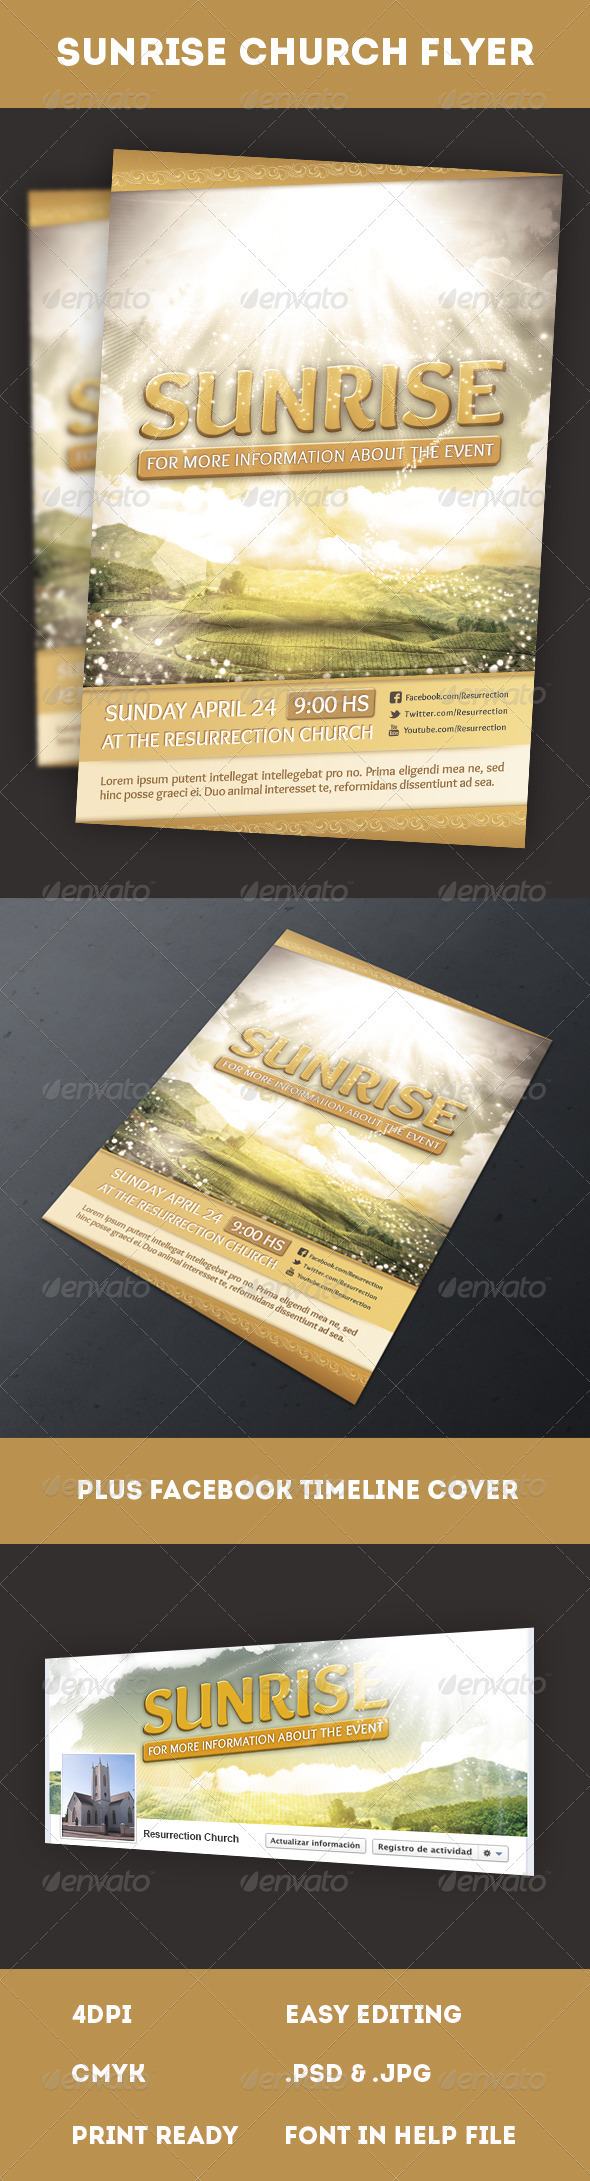 Sunrise Flyer - Church Flyers